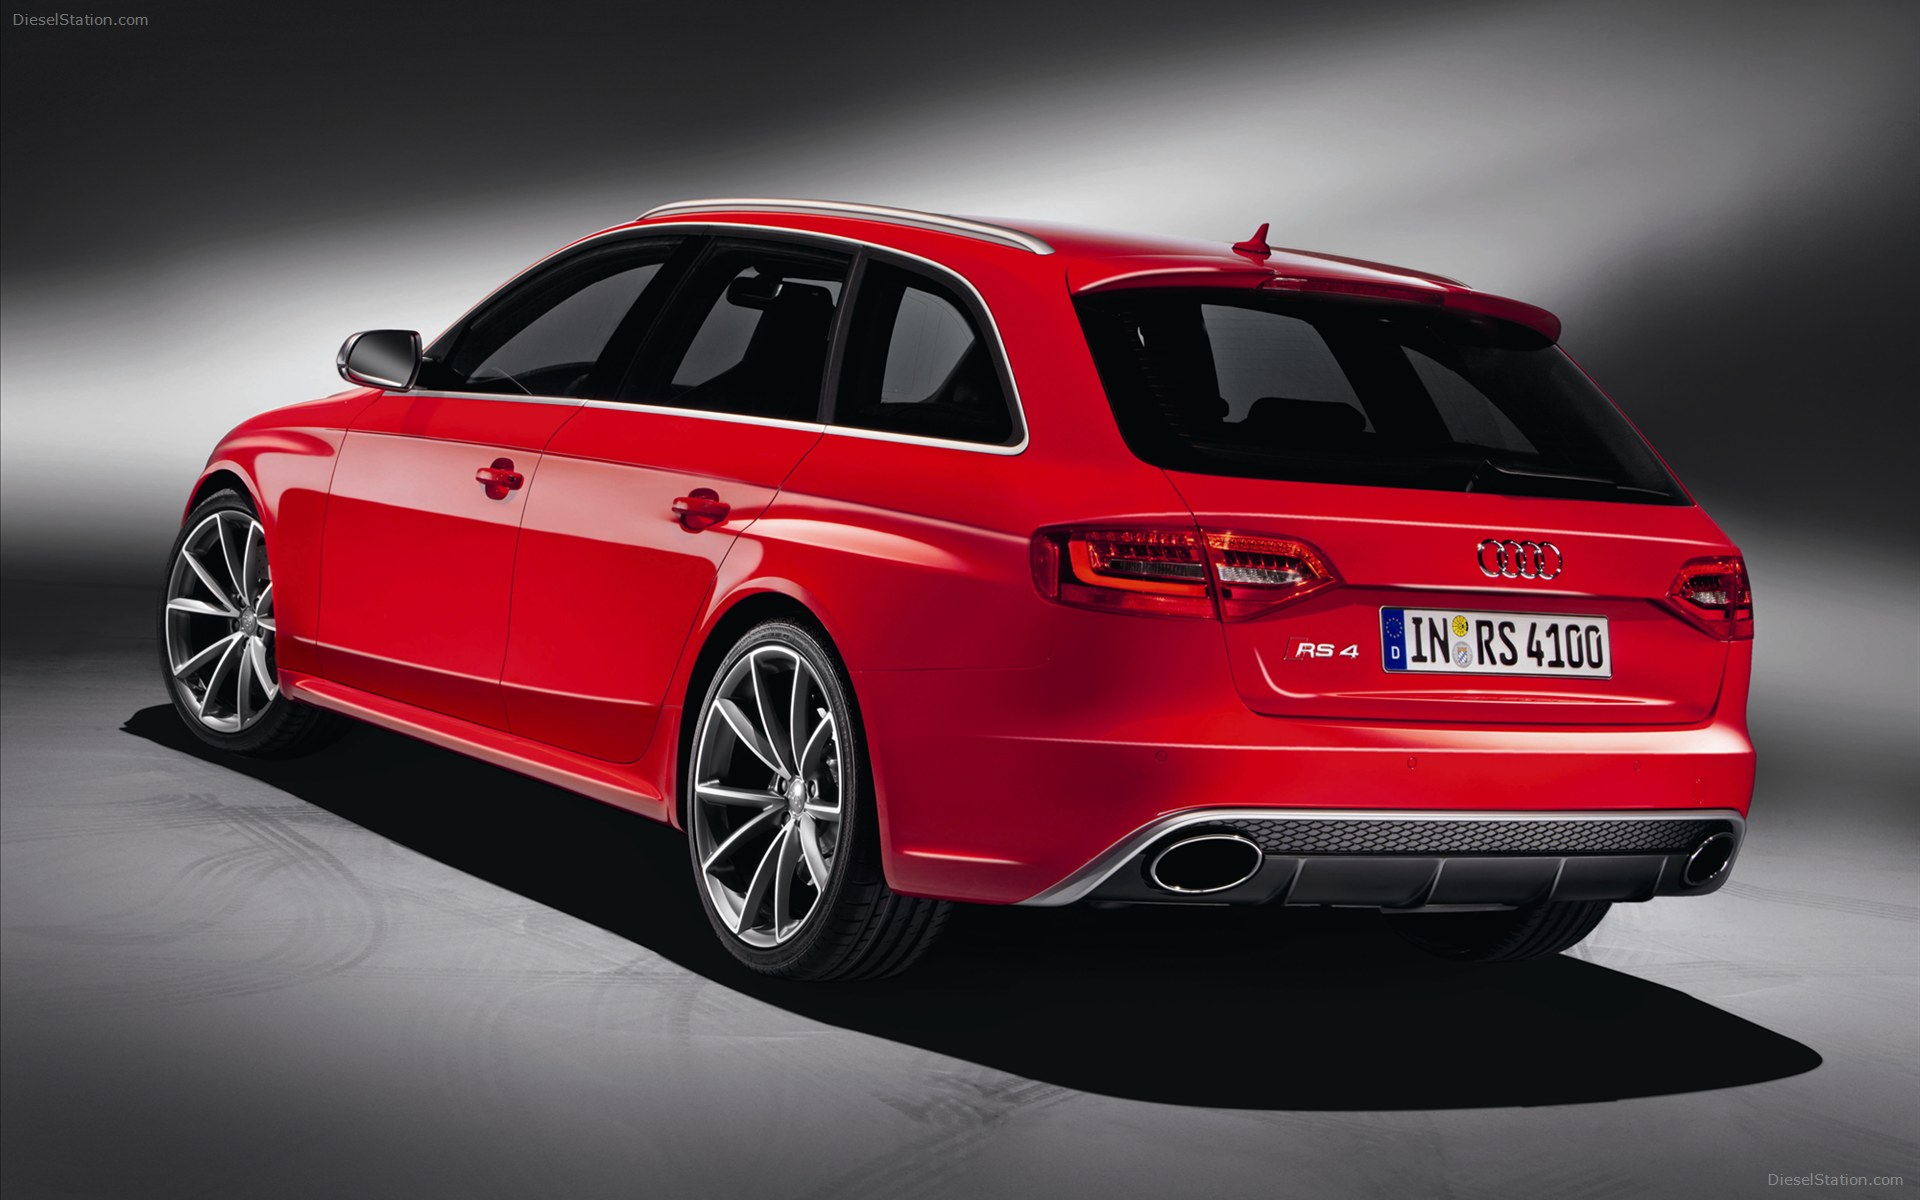 Audi RS4 HD Car and Auto Wallpaper for Samsung S5, Iphone I6, Android & Computer 4 Wallpaper